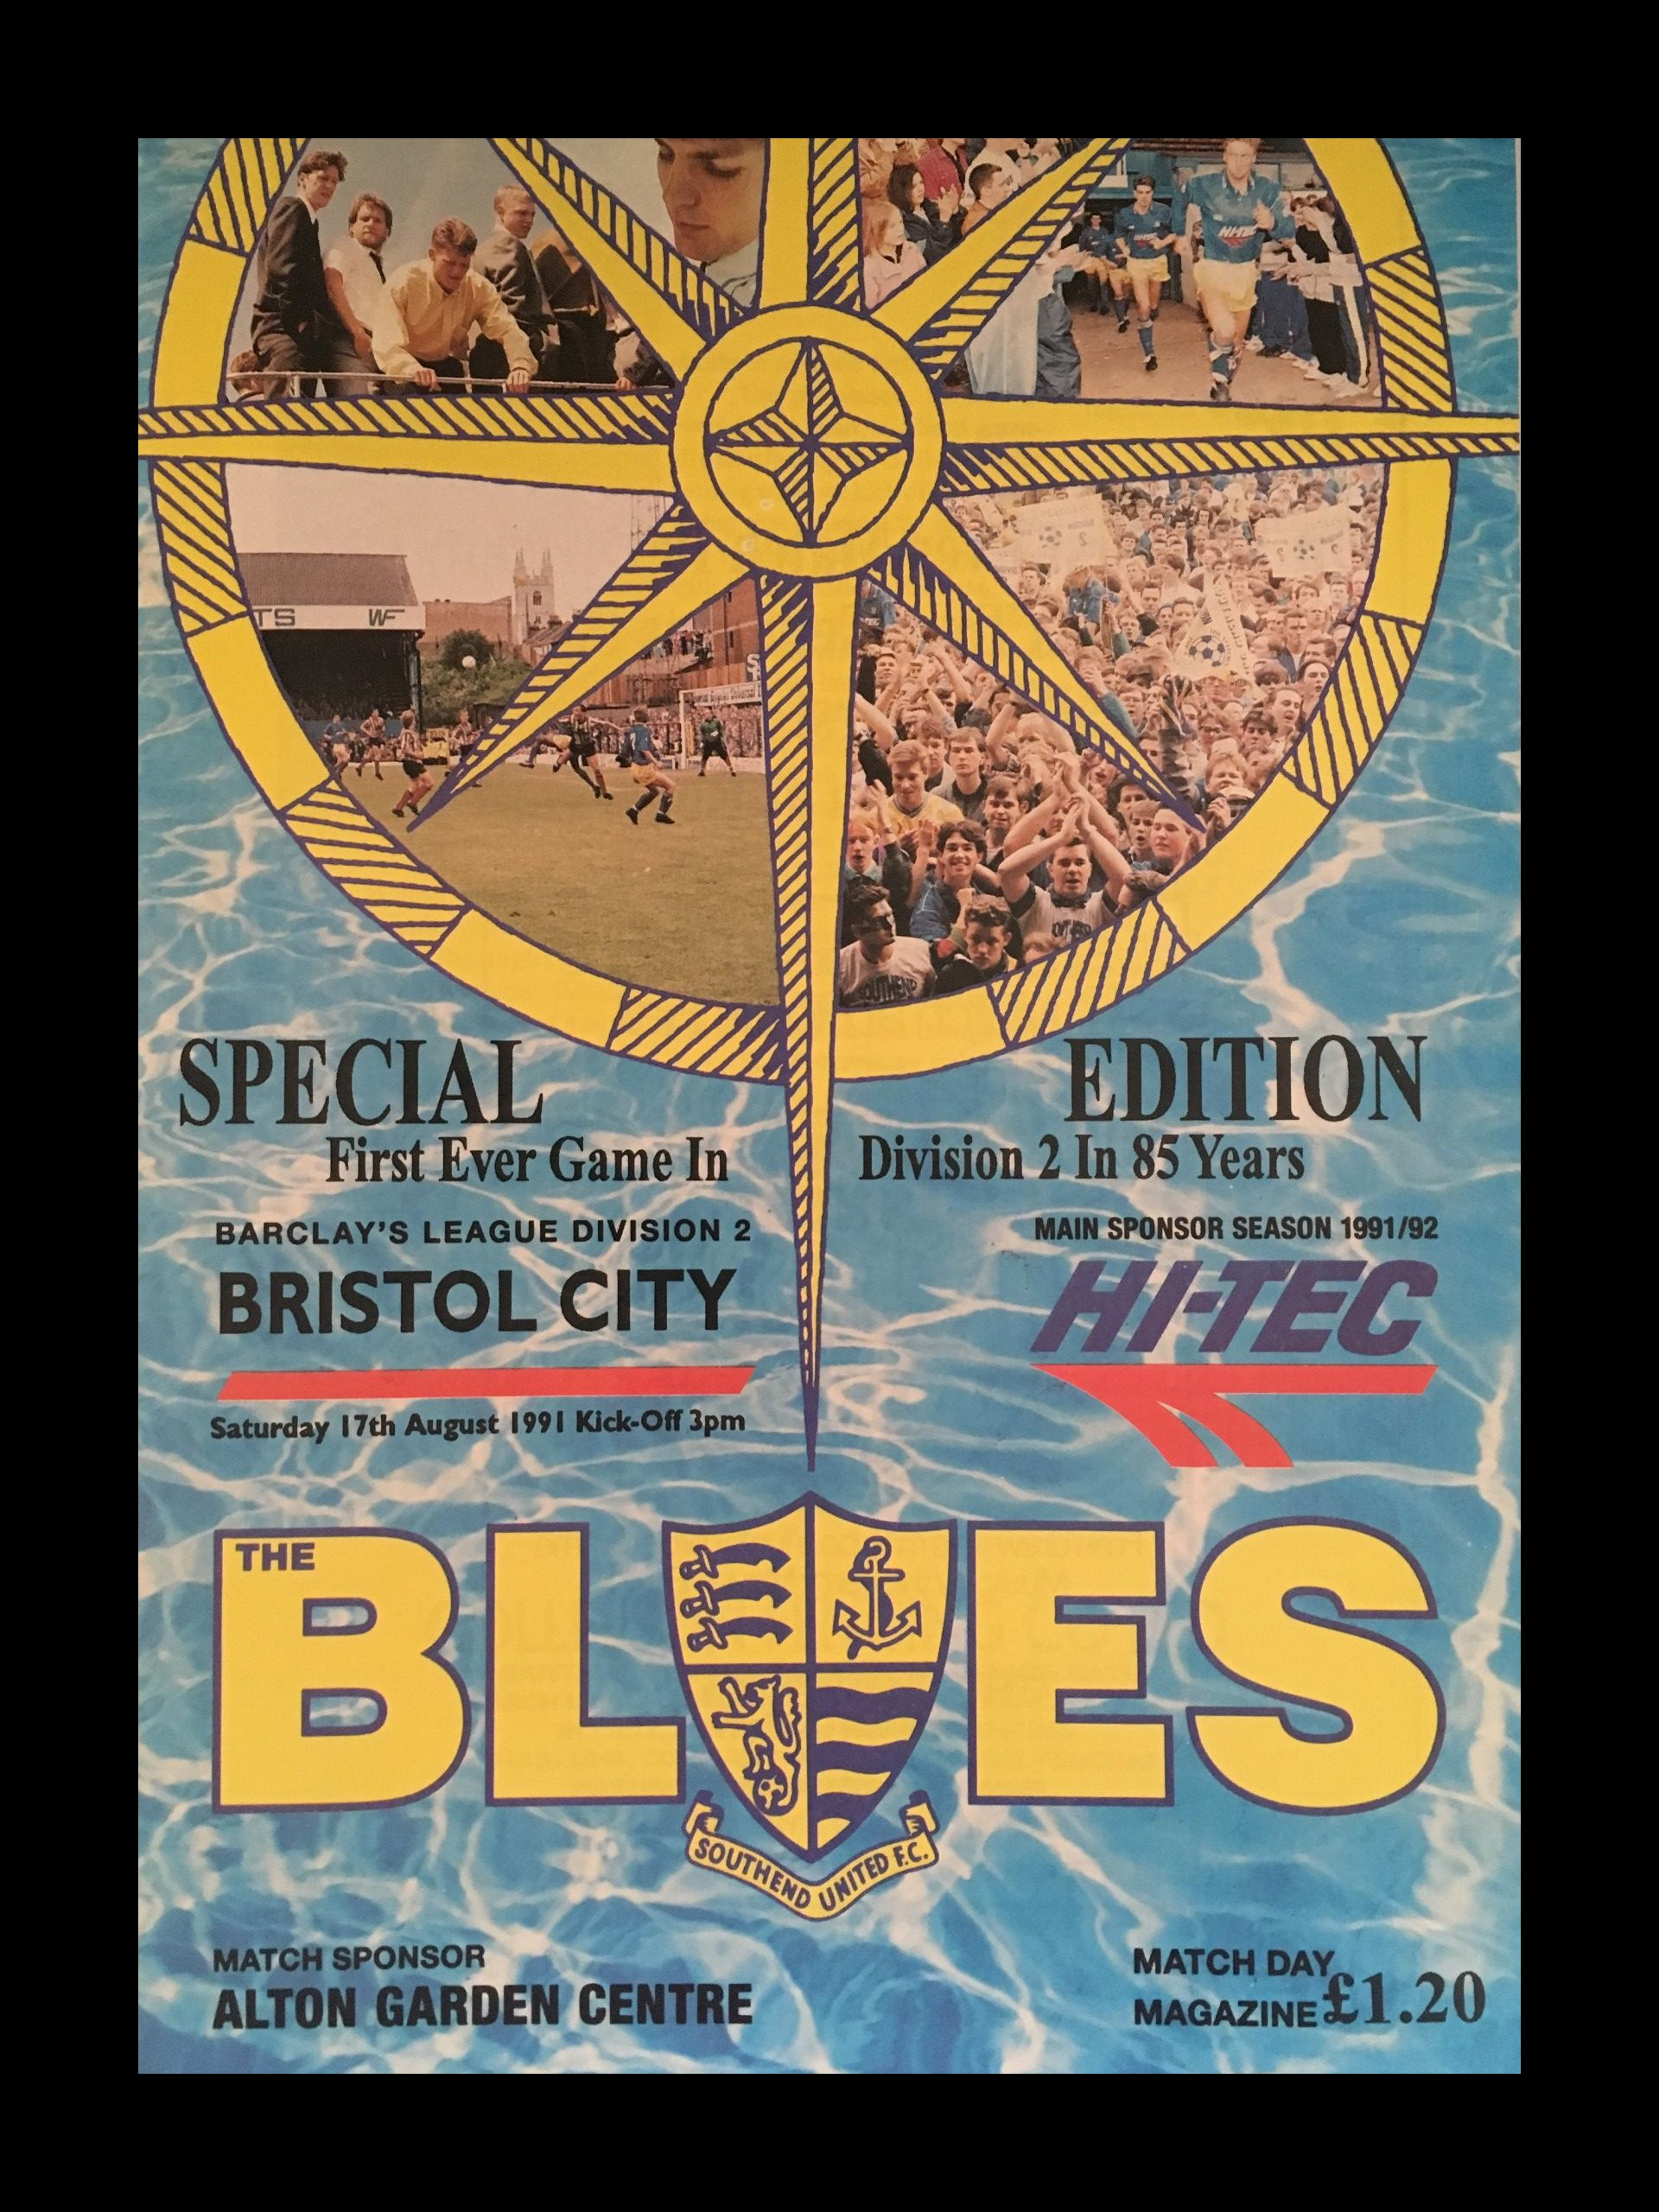 Southend United v Bristol City 17-08-1991 Programme